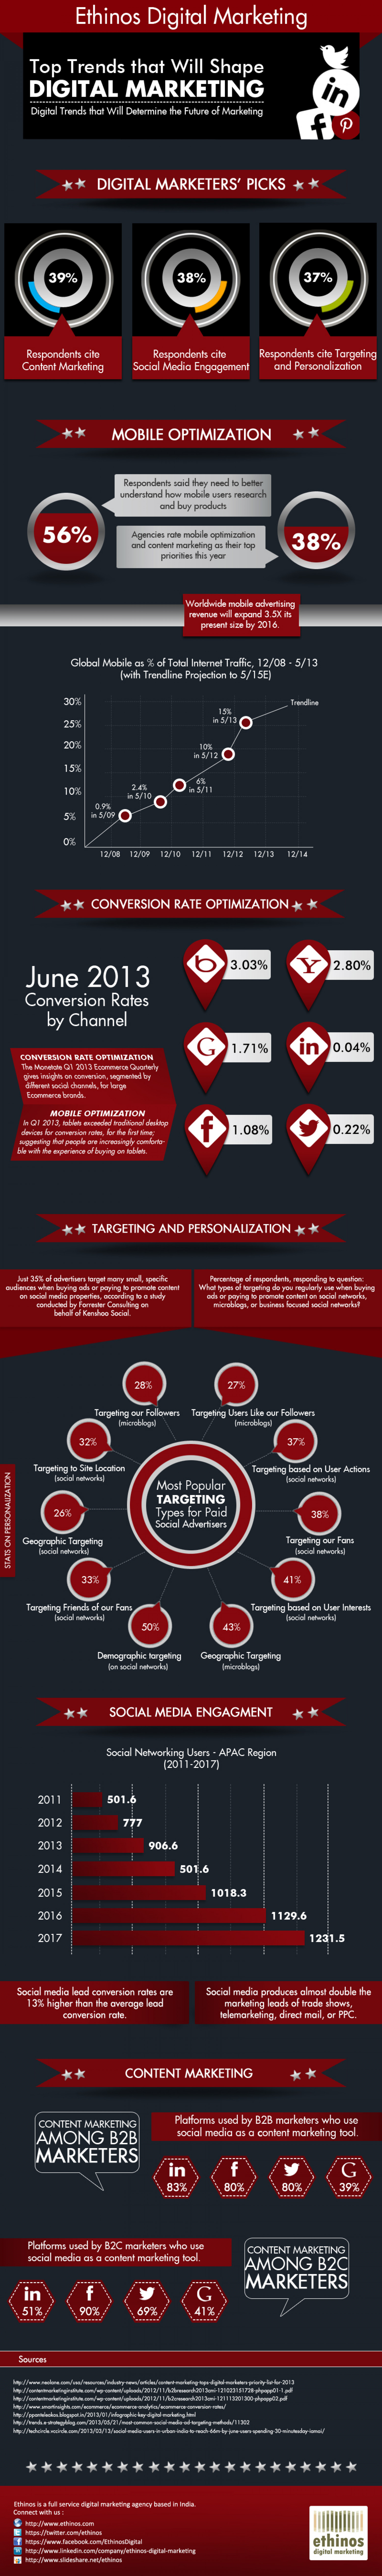 On The Top Trends That Will Shape Digital Marketing Infographic